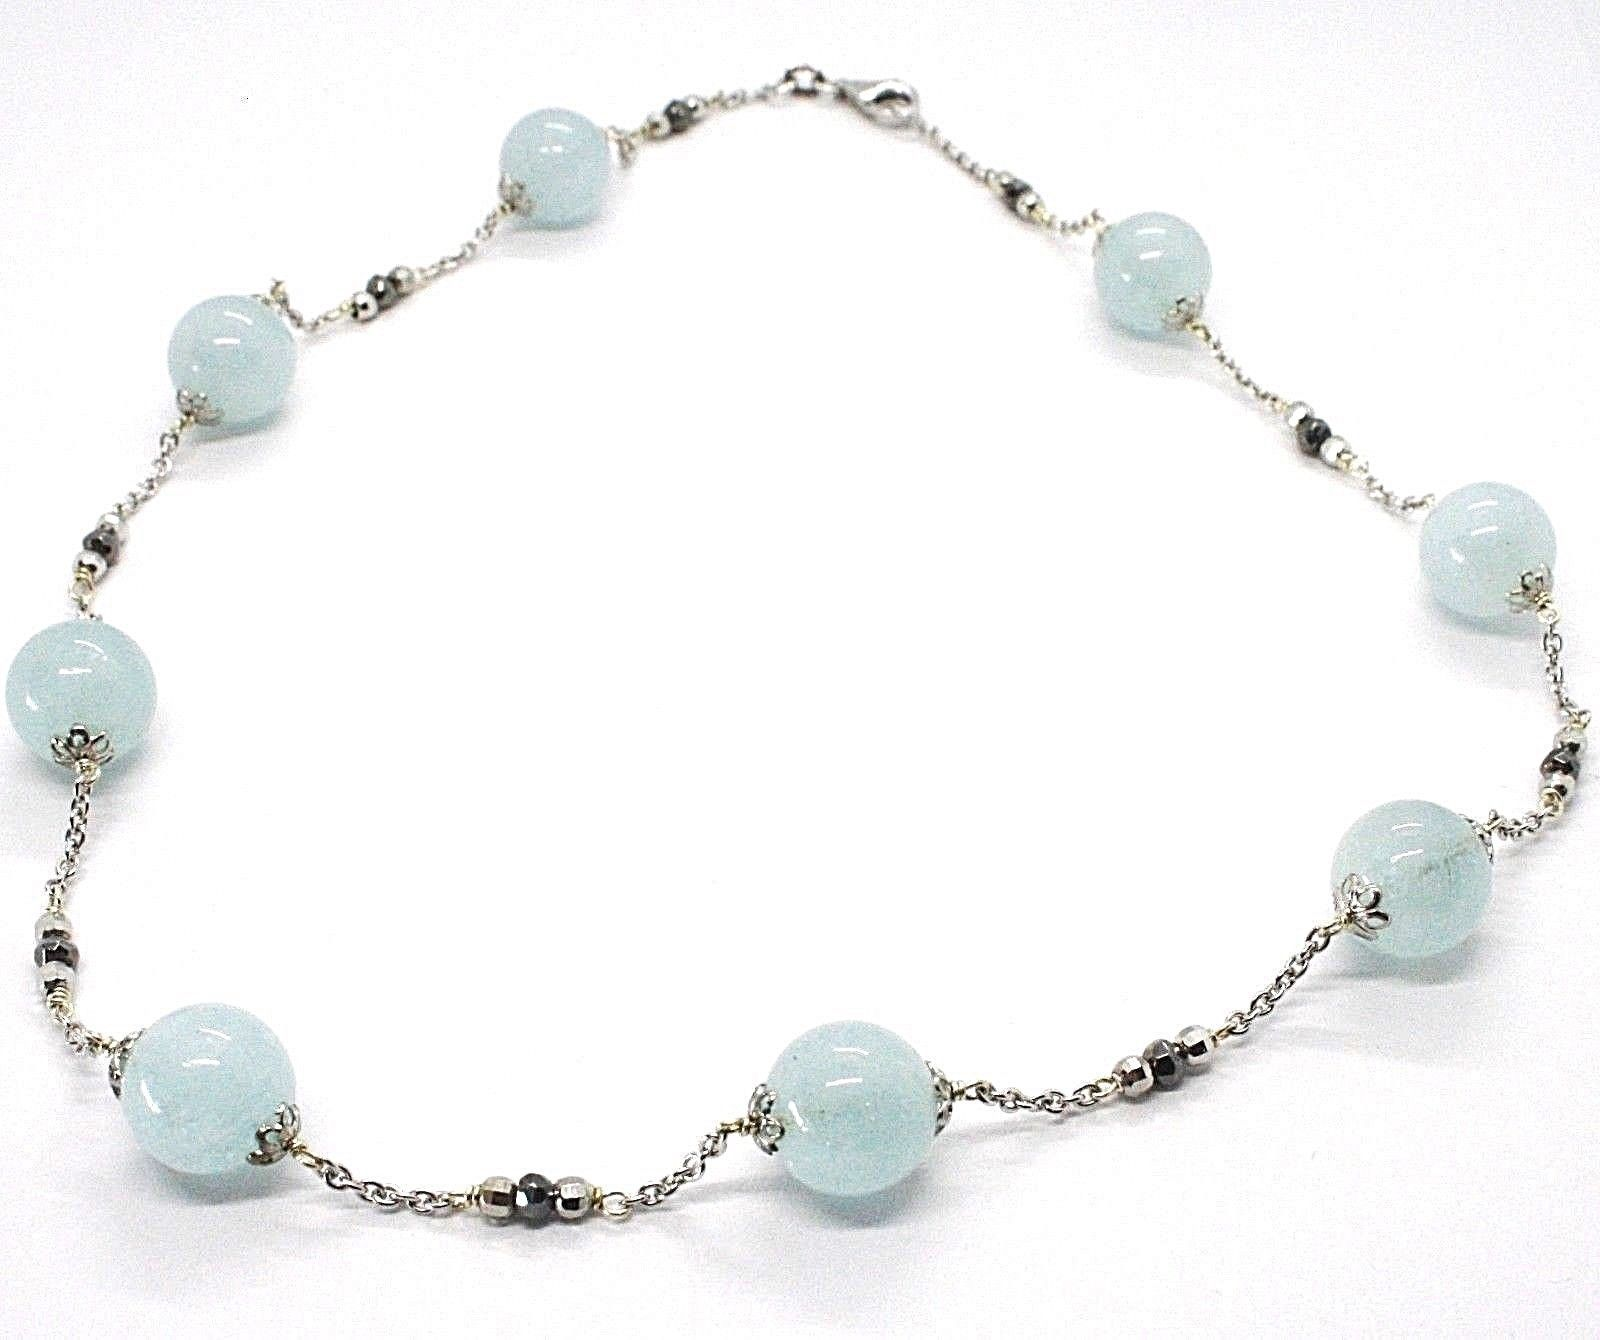 Silver necklace 925, Aquamarine spheres, Pyrite Faceted, Chain Rolo